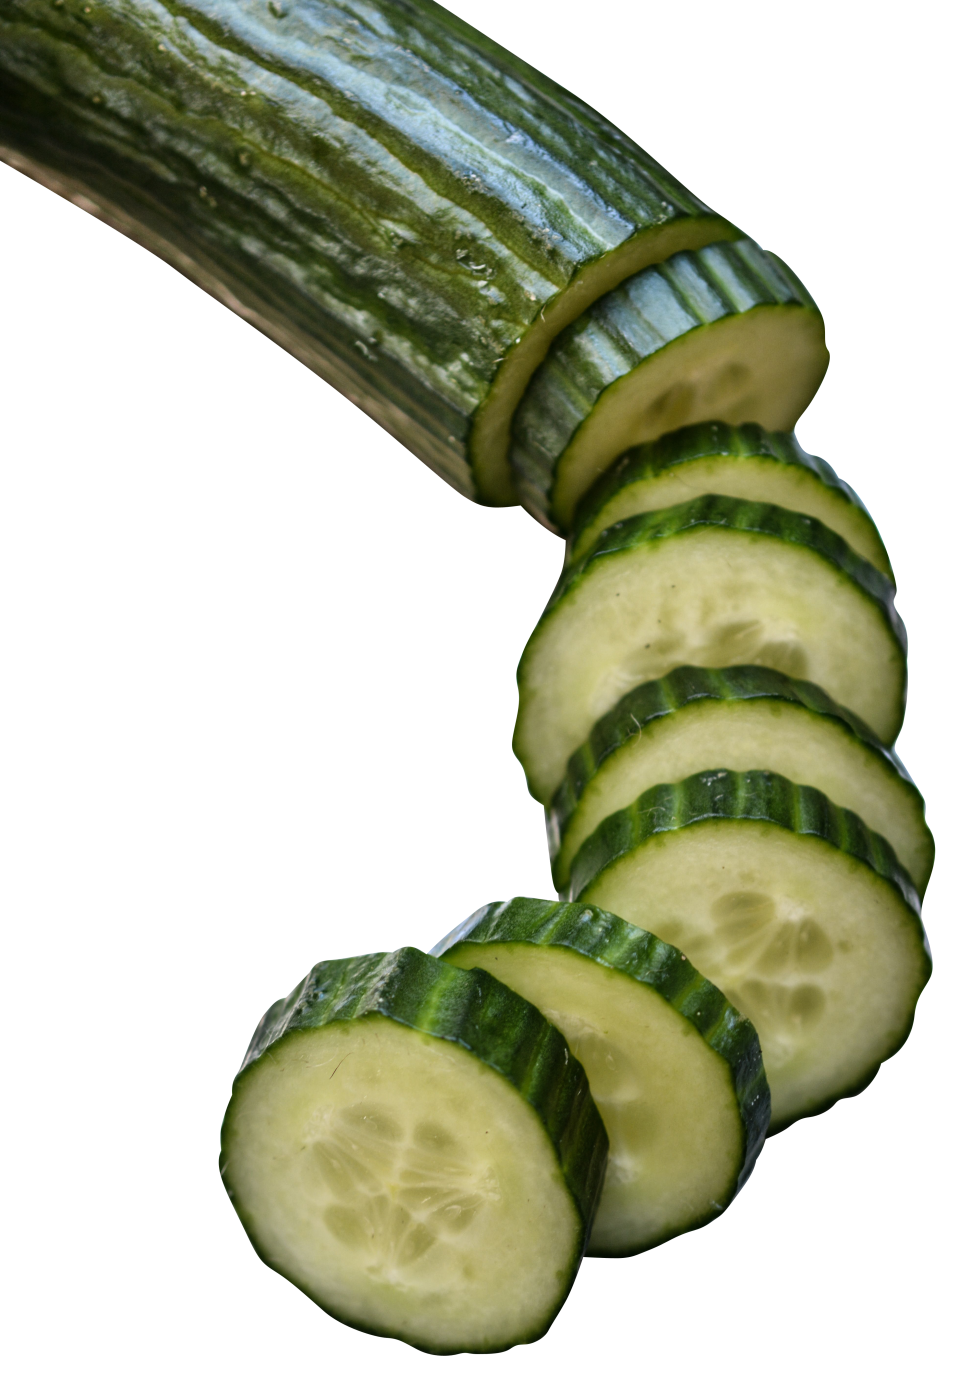 Cucumber in slices PNG Image